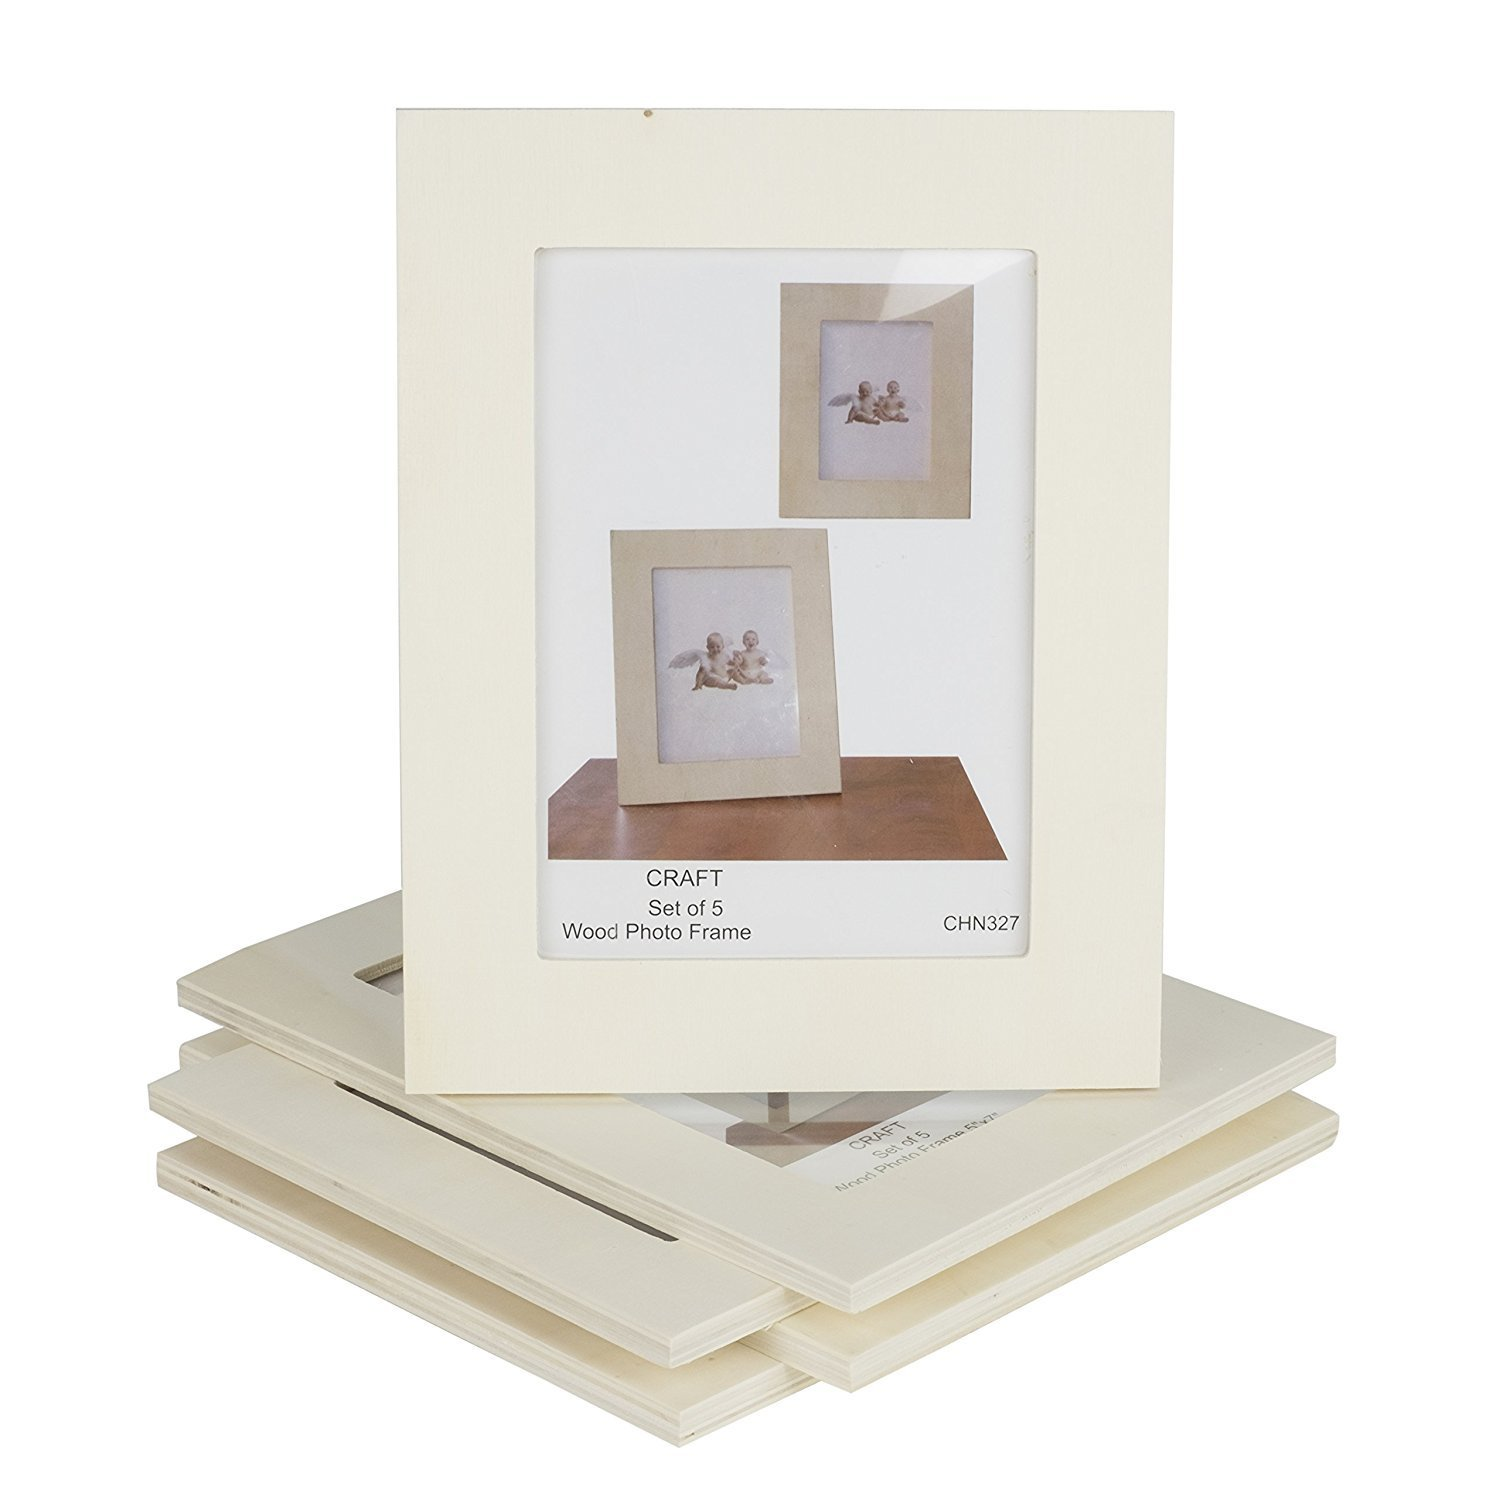 Unfinished Solid Wood Photo Picture Frames 4x6 Inch Ready to Paint for DIY Projects Set of 5